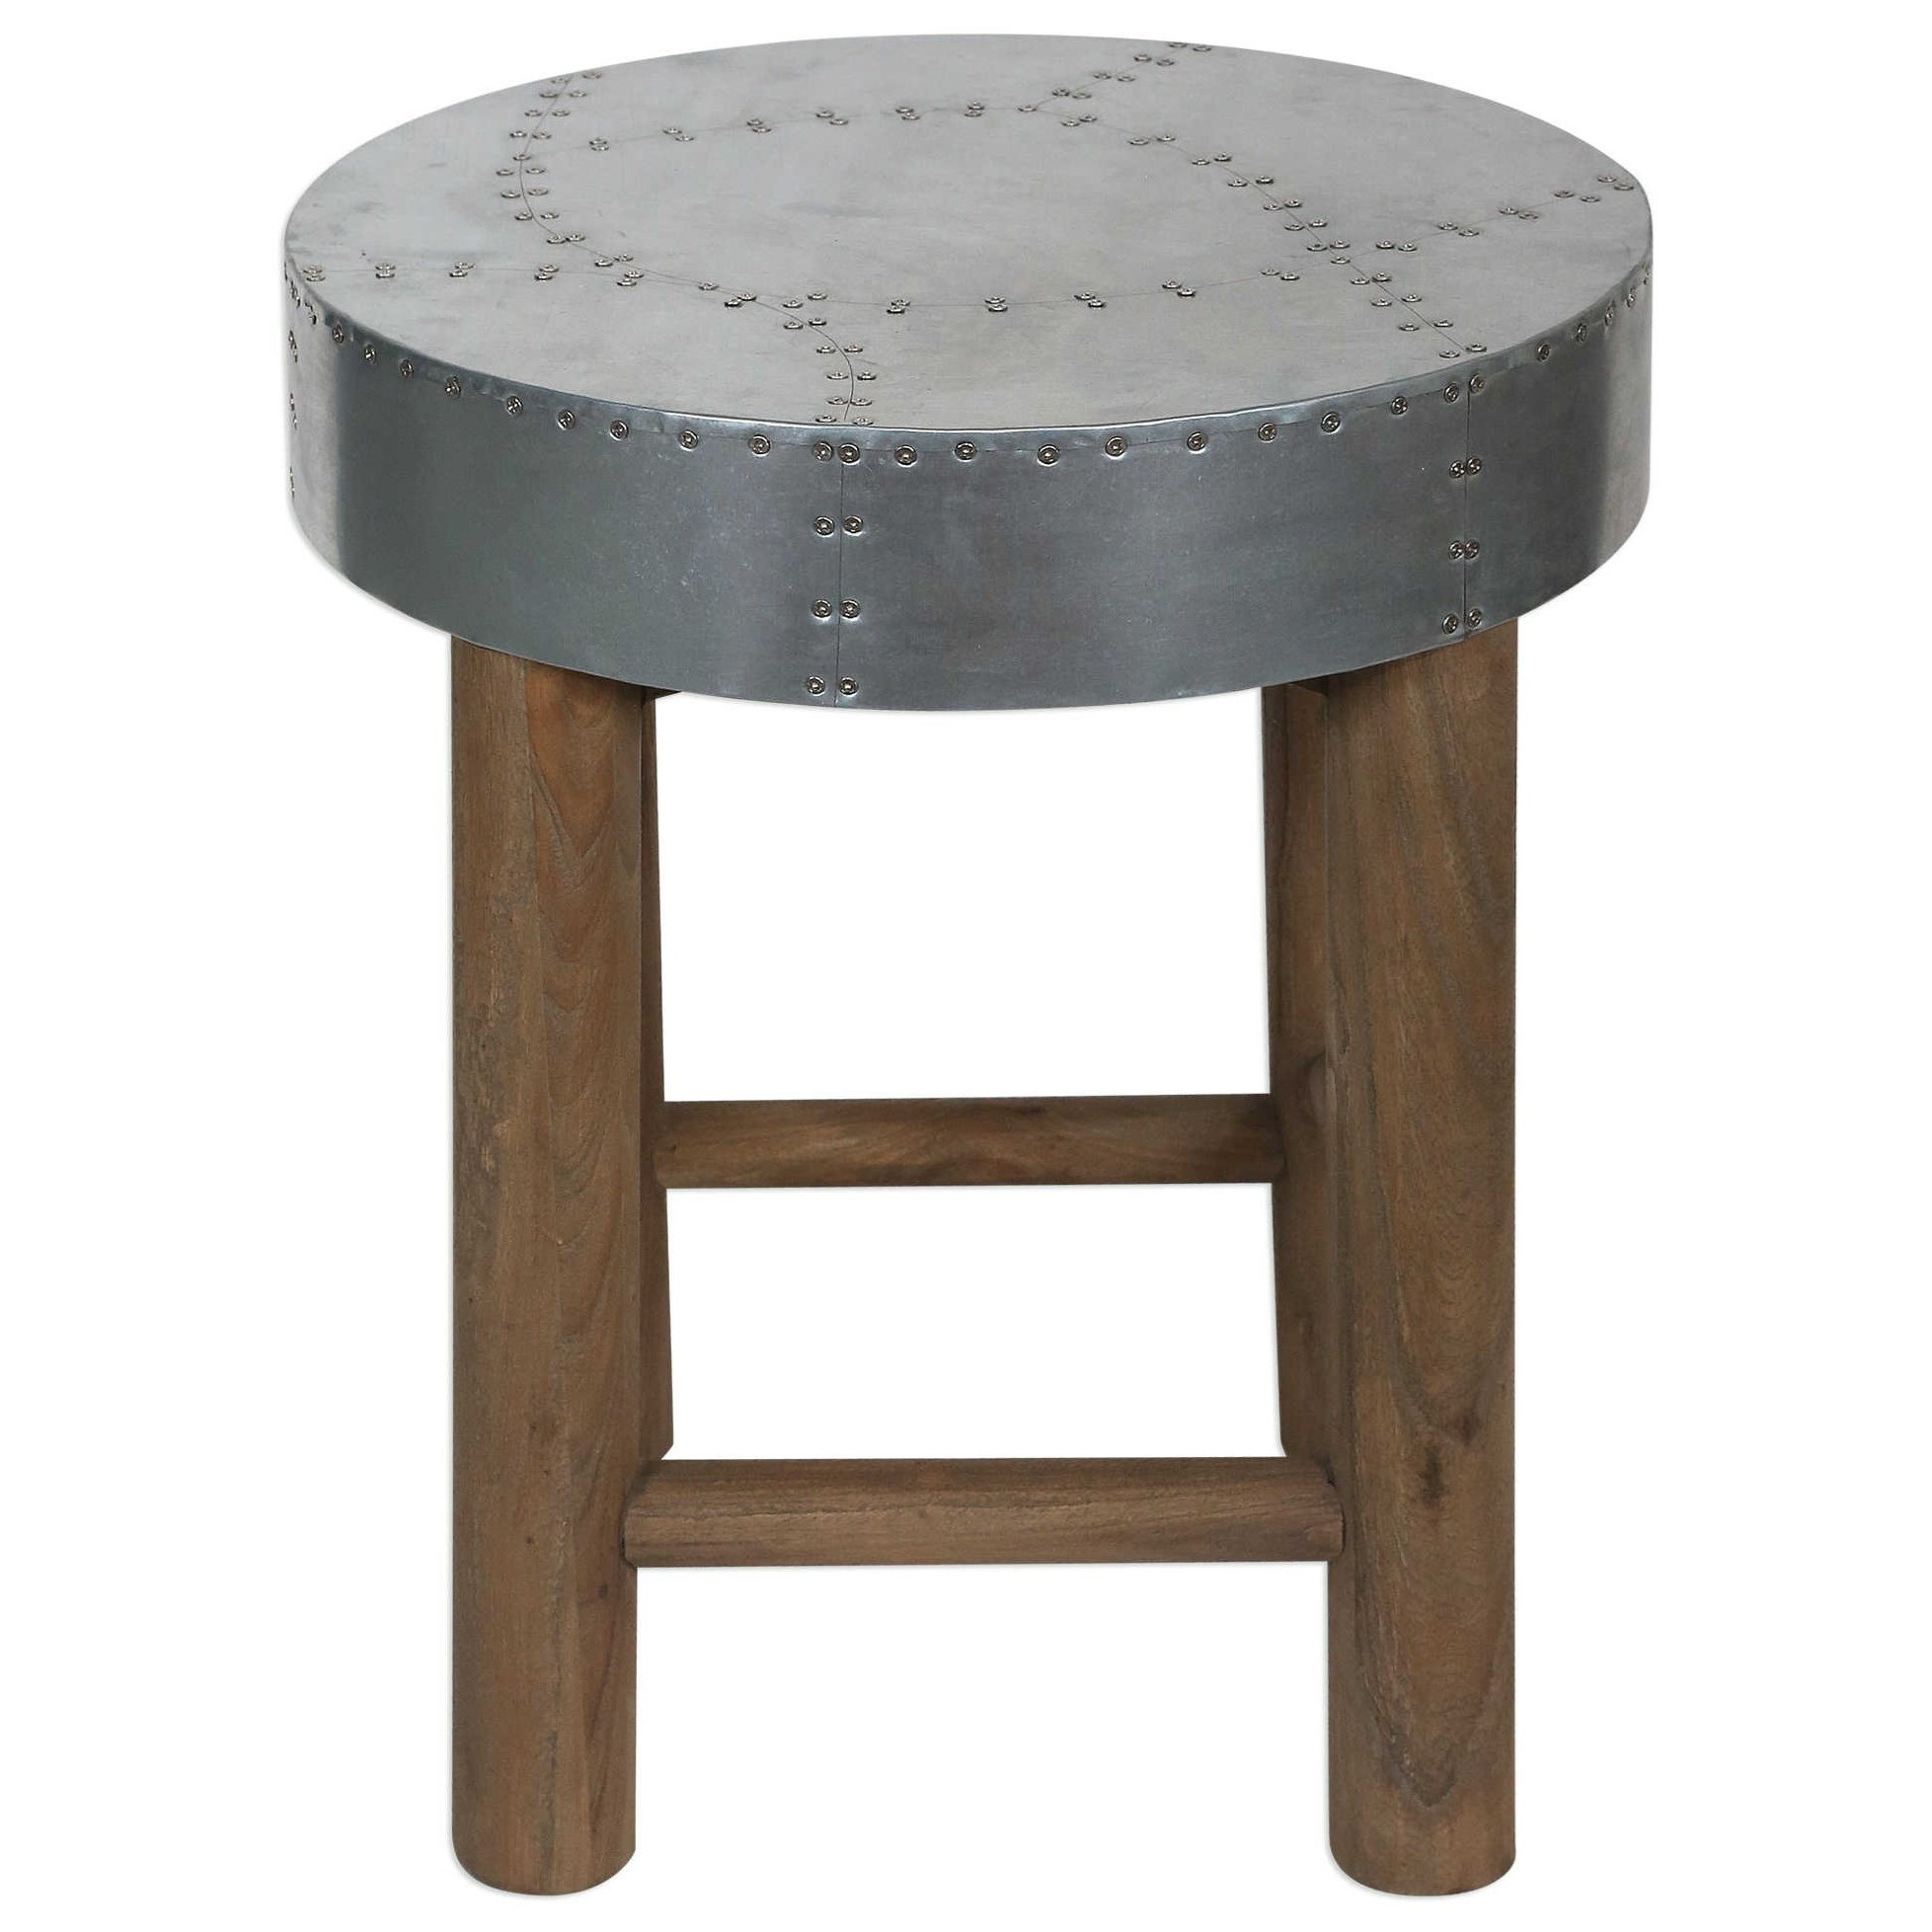 Uttermost Accent Furniture Jace Industrial Aluminum Stool - Item Number: 24677